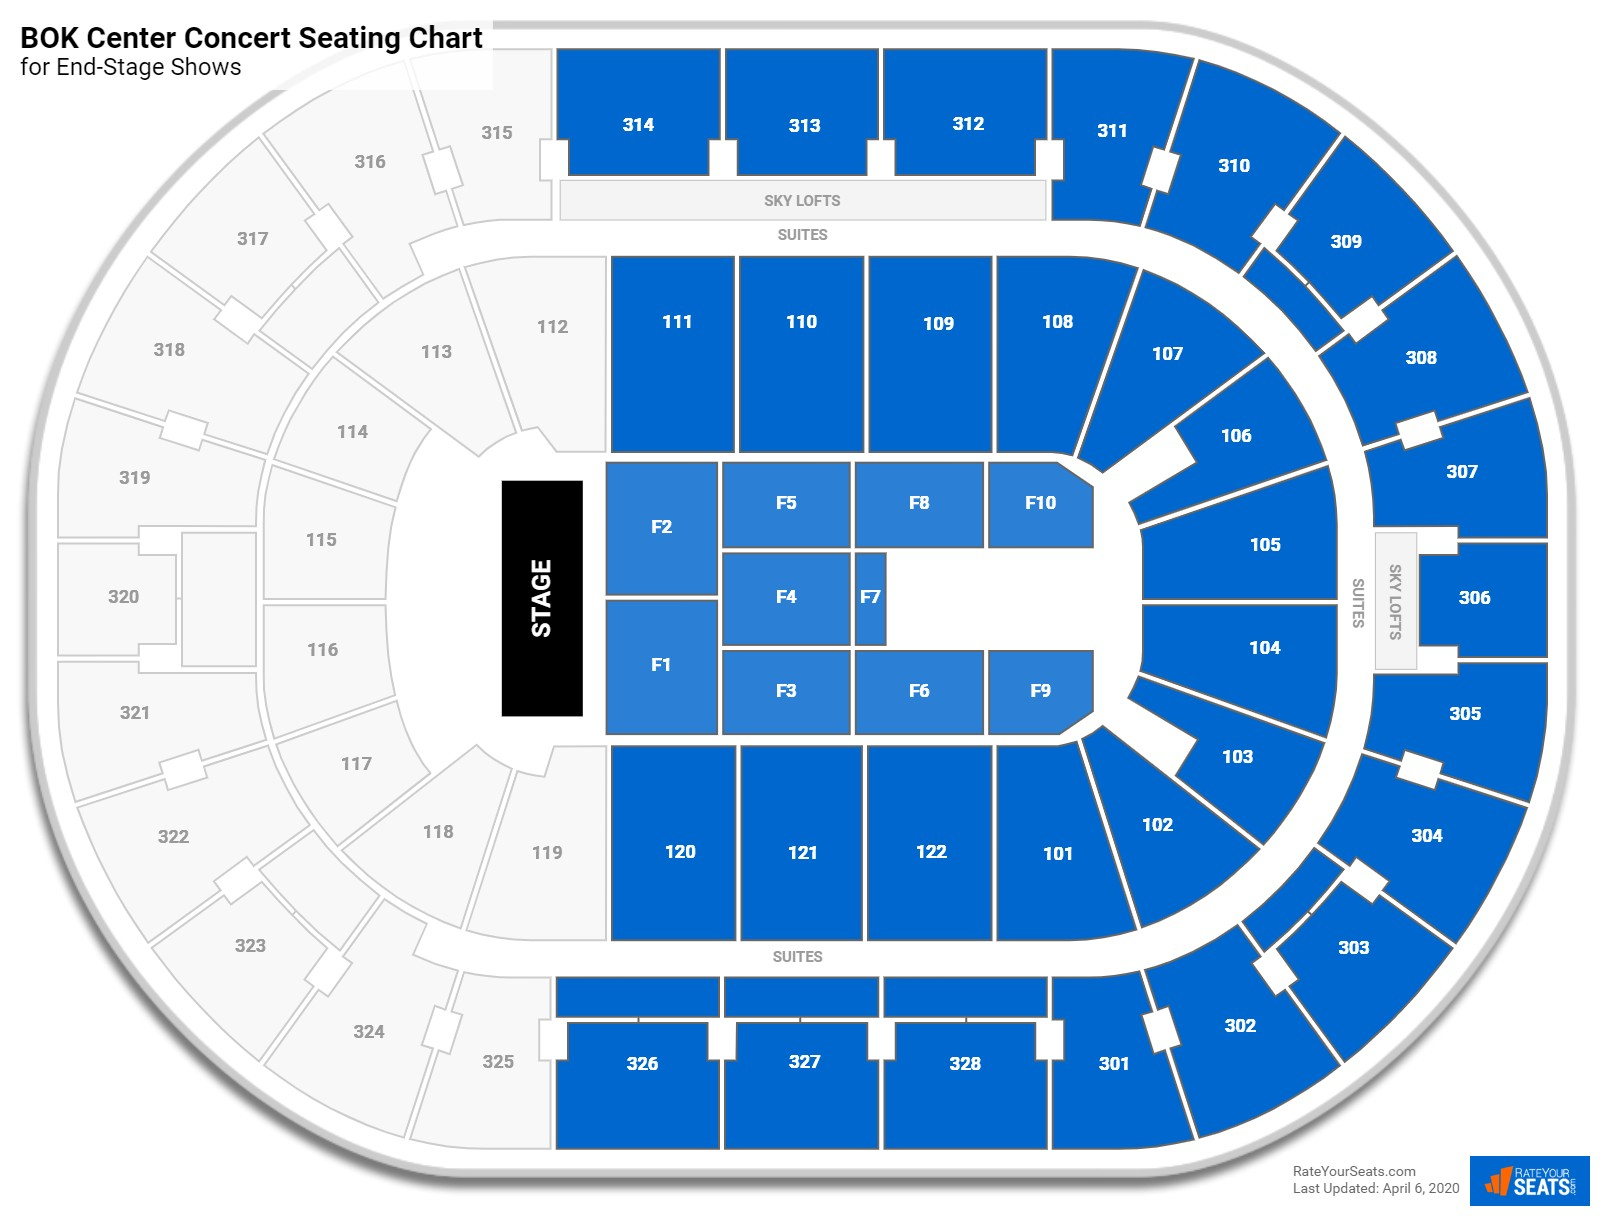 Bok Center Seating Charts For Concerts  Rateyourseats with Bok Center Seating Chart Detailed